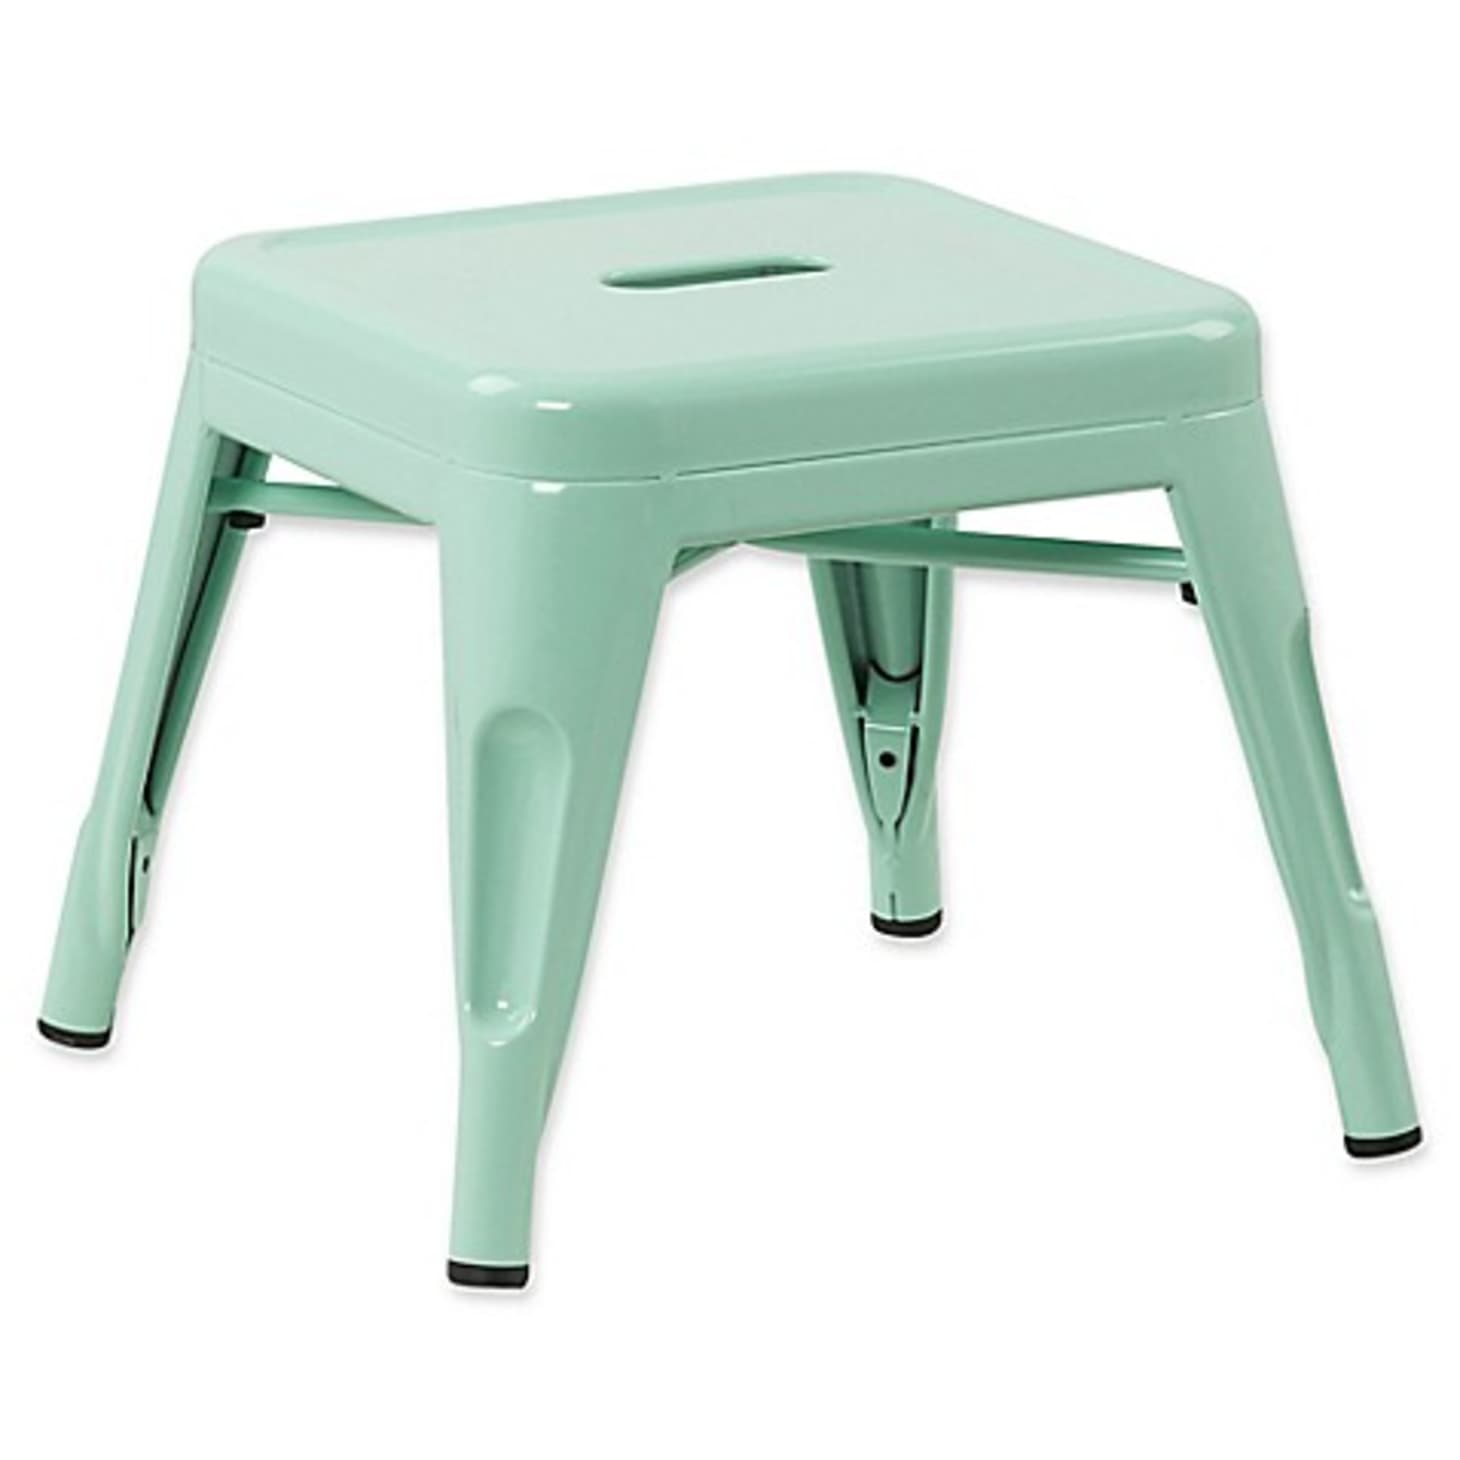 Terrific The Best Step Stools And Step Stool Diy Ideas Apartment Caraccident5 Cool Chair Designs And Ideas Caraccident5Info